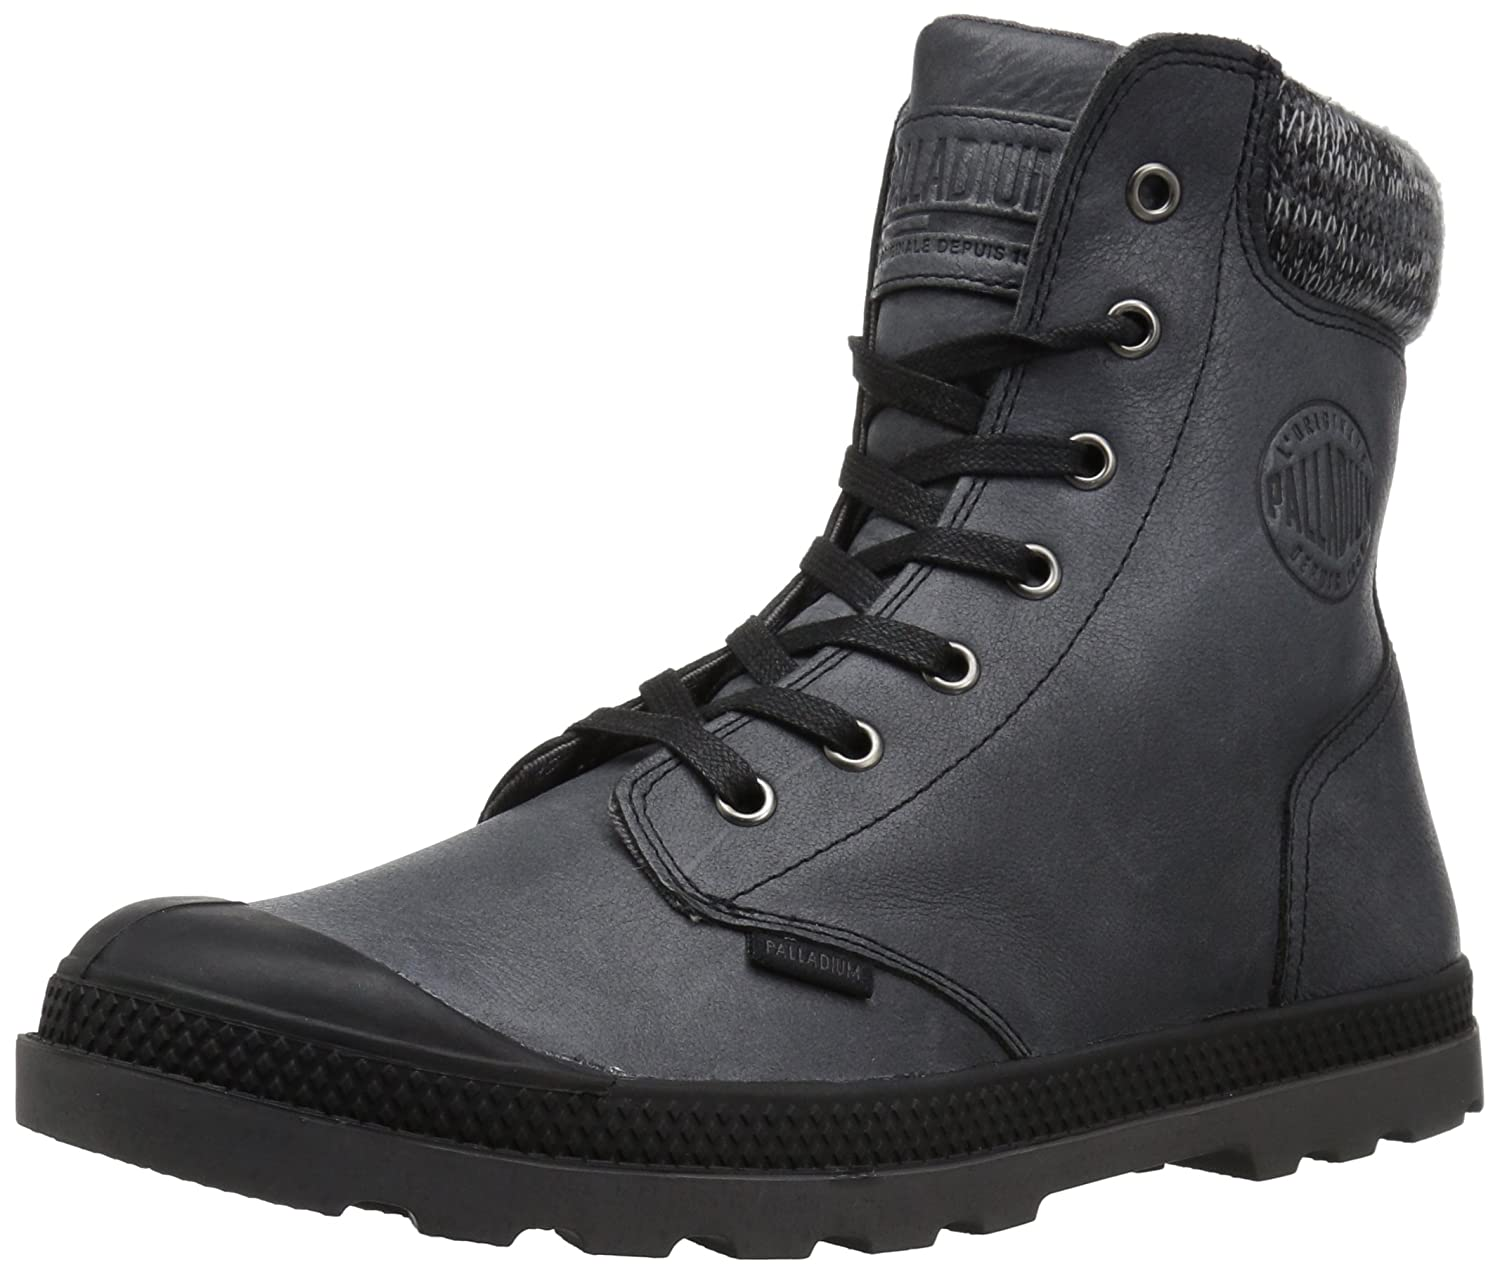 Palladium Women's Pampa Hi Knit Lp Chukka Boot B01MZG31T7 7.5 B(M) US|Black/Forged Iron